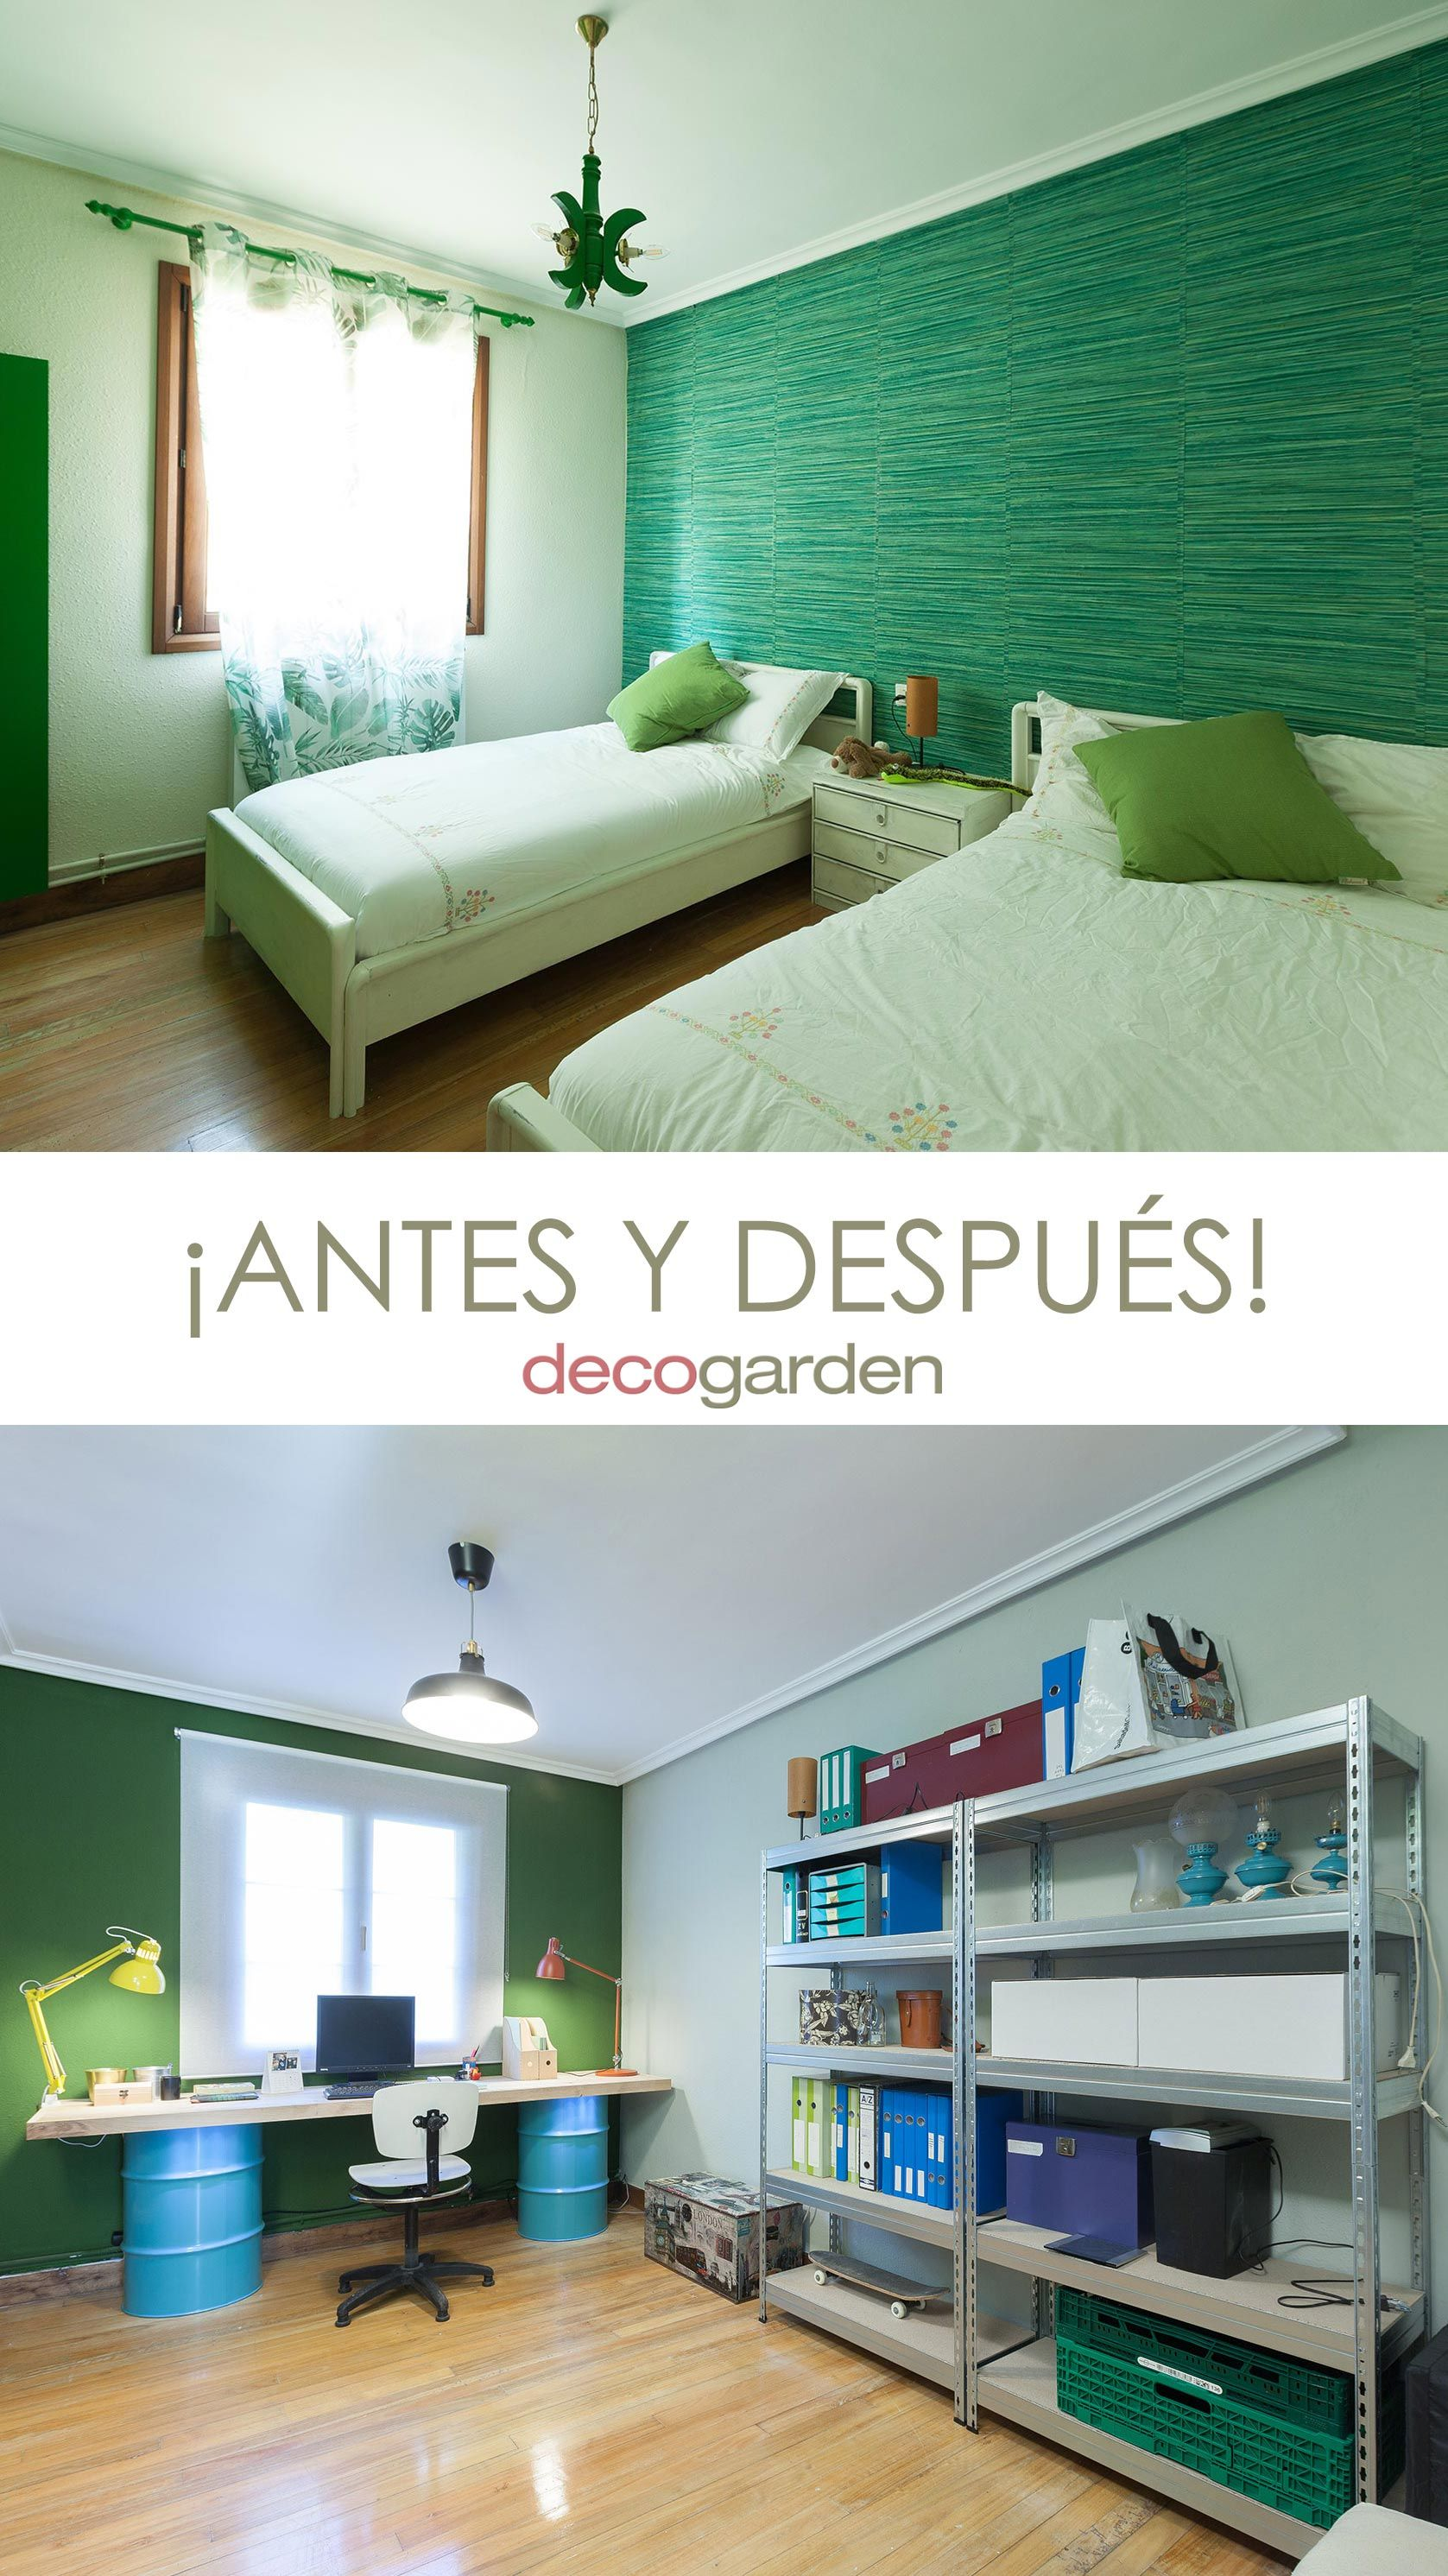 Decorar estudio multifuncional color verde - antes y después